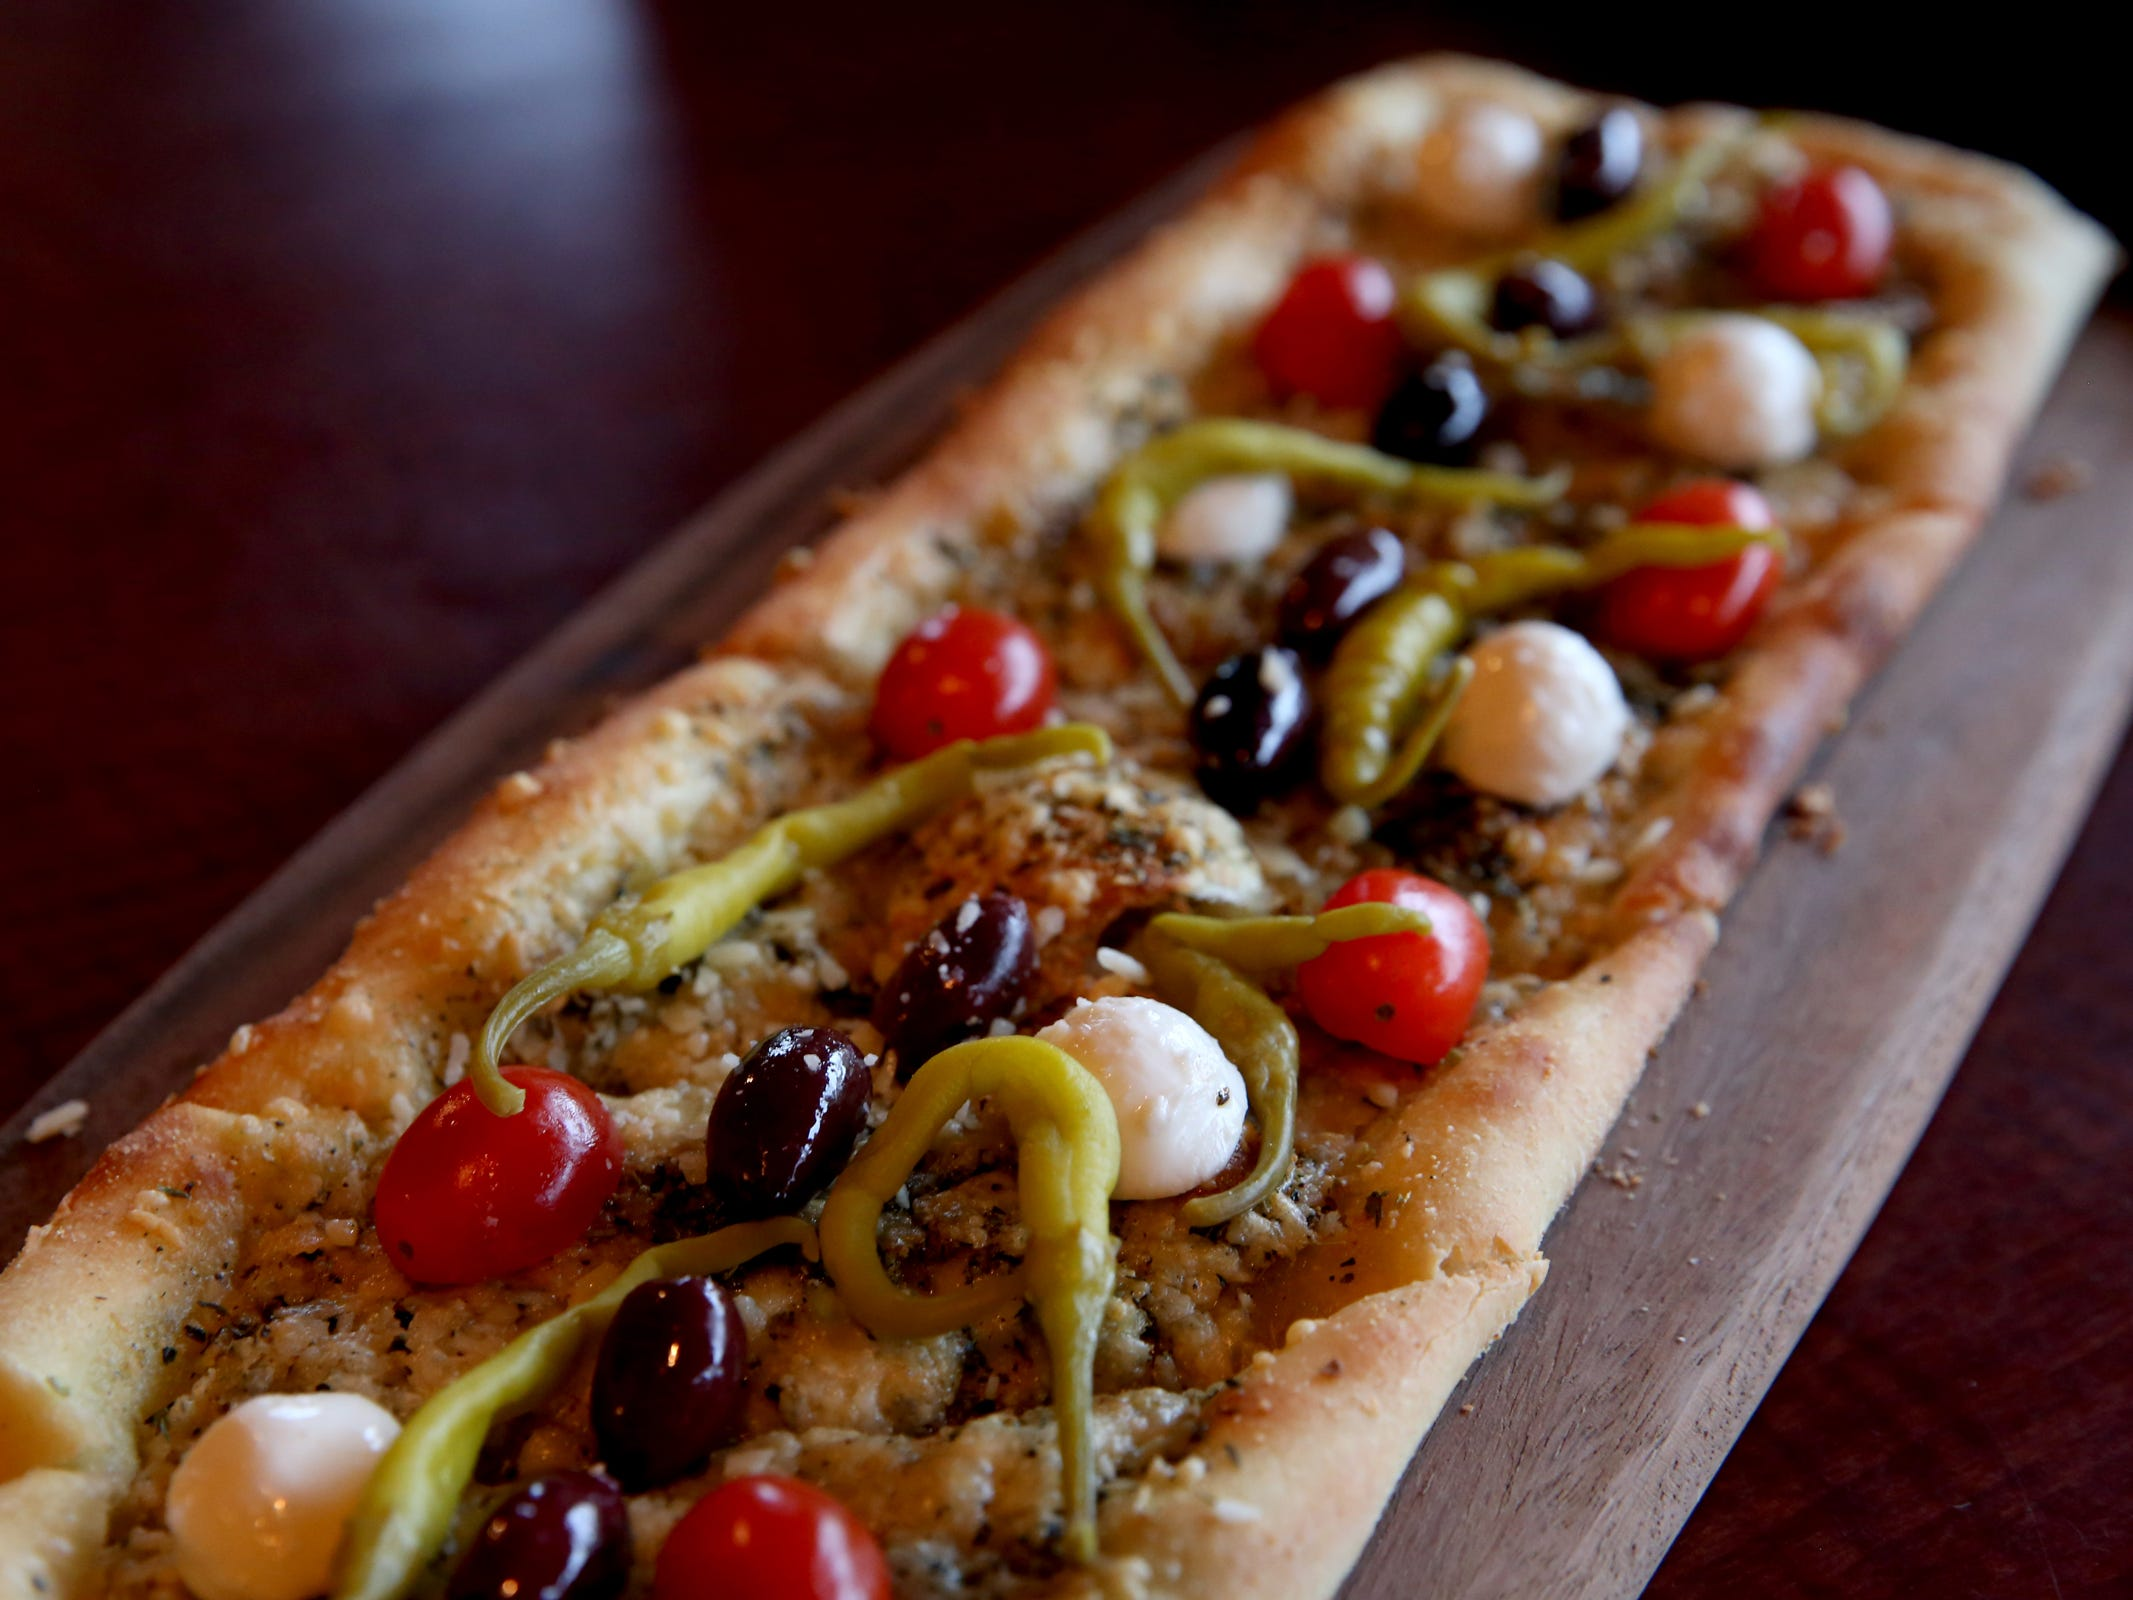 The Flat Herb Bread, with fresh roasted garlic, herbs, parmesan, cambozola cheese and cherry tomatoes at Bentley's Grill in Salem on Friday, Feb. 15, 2019.